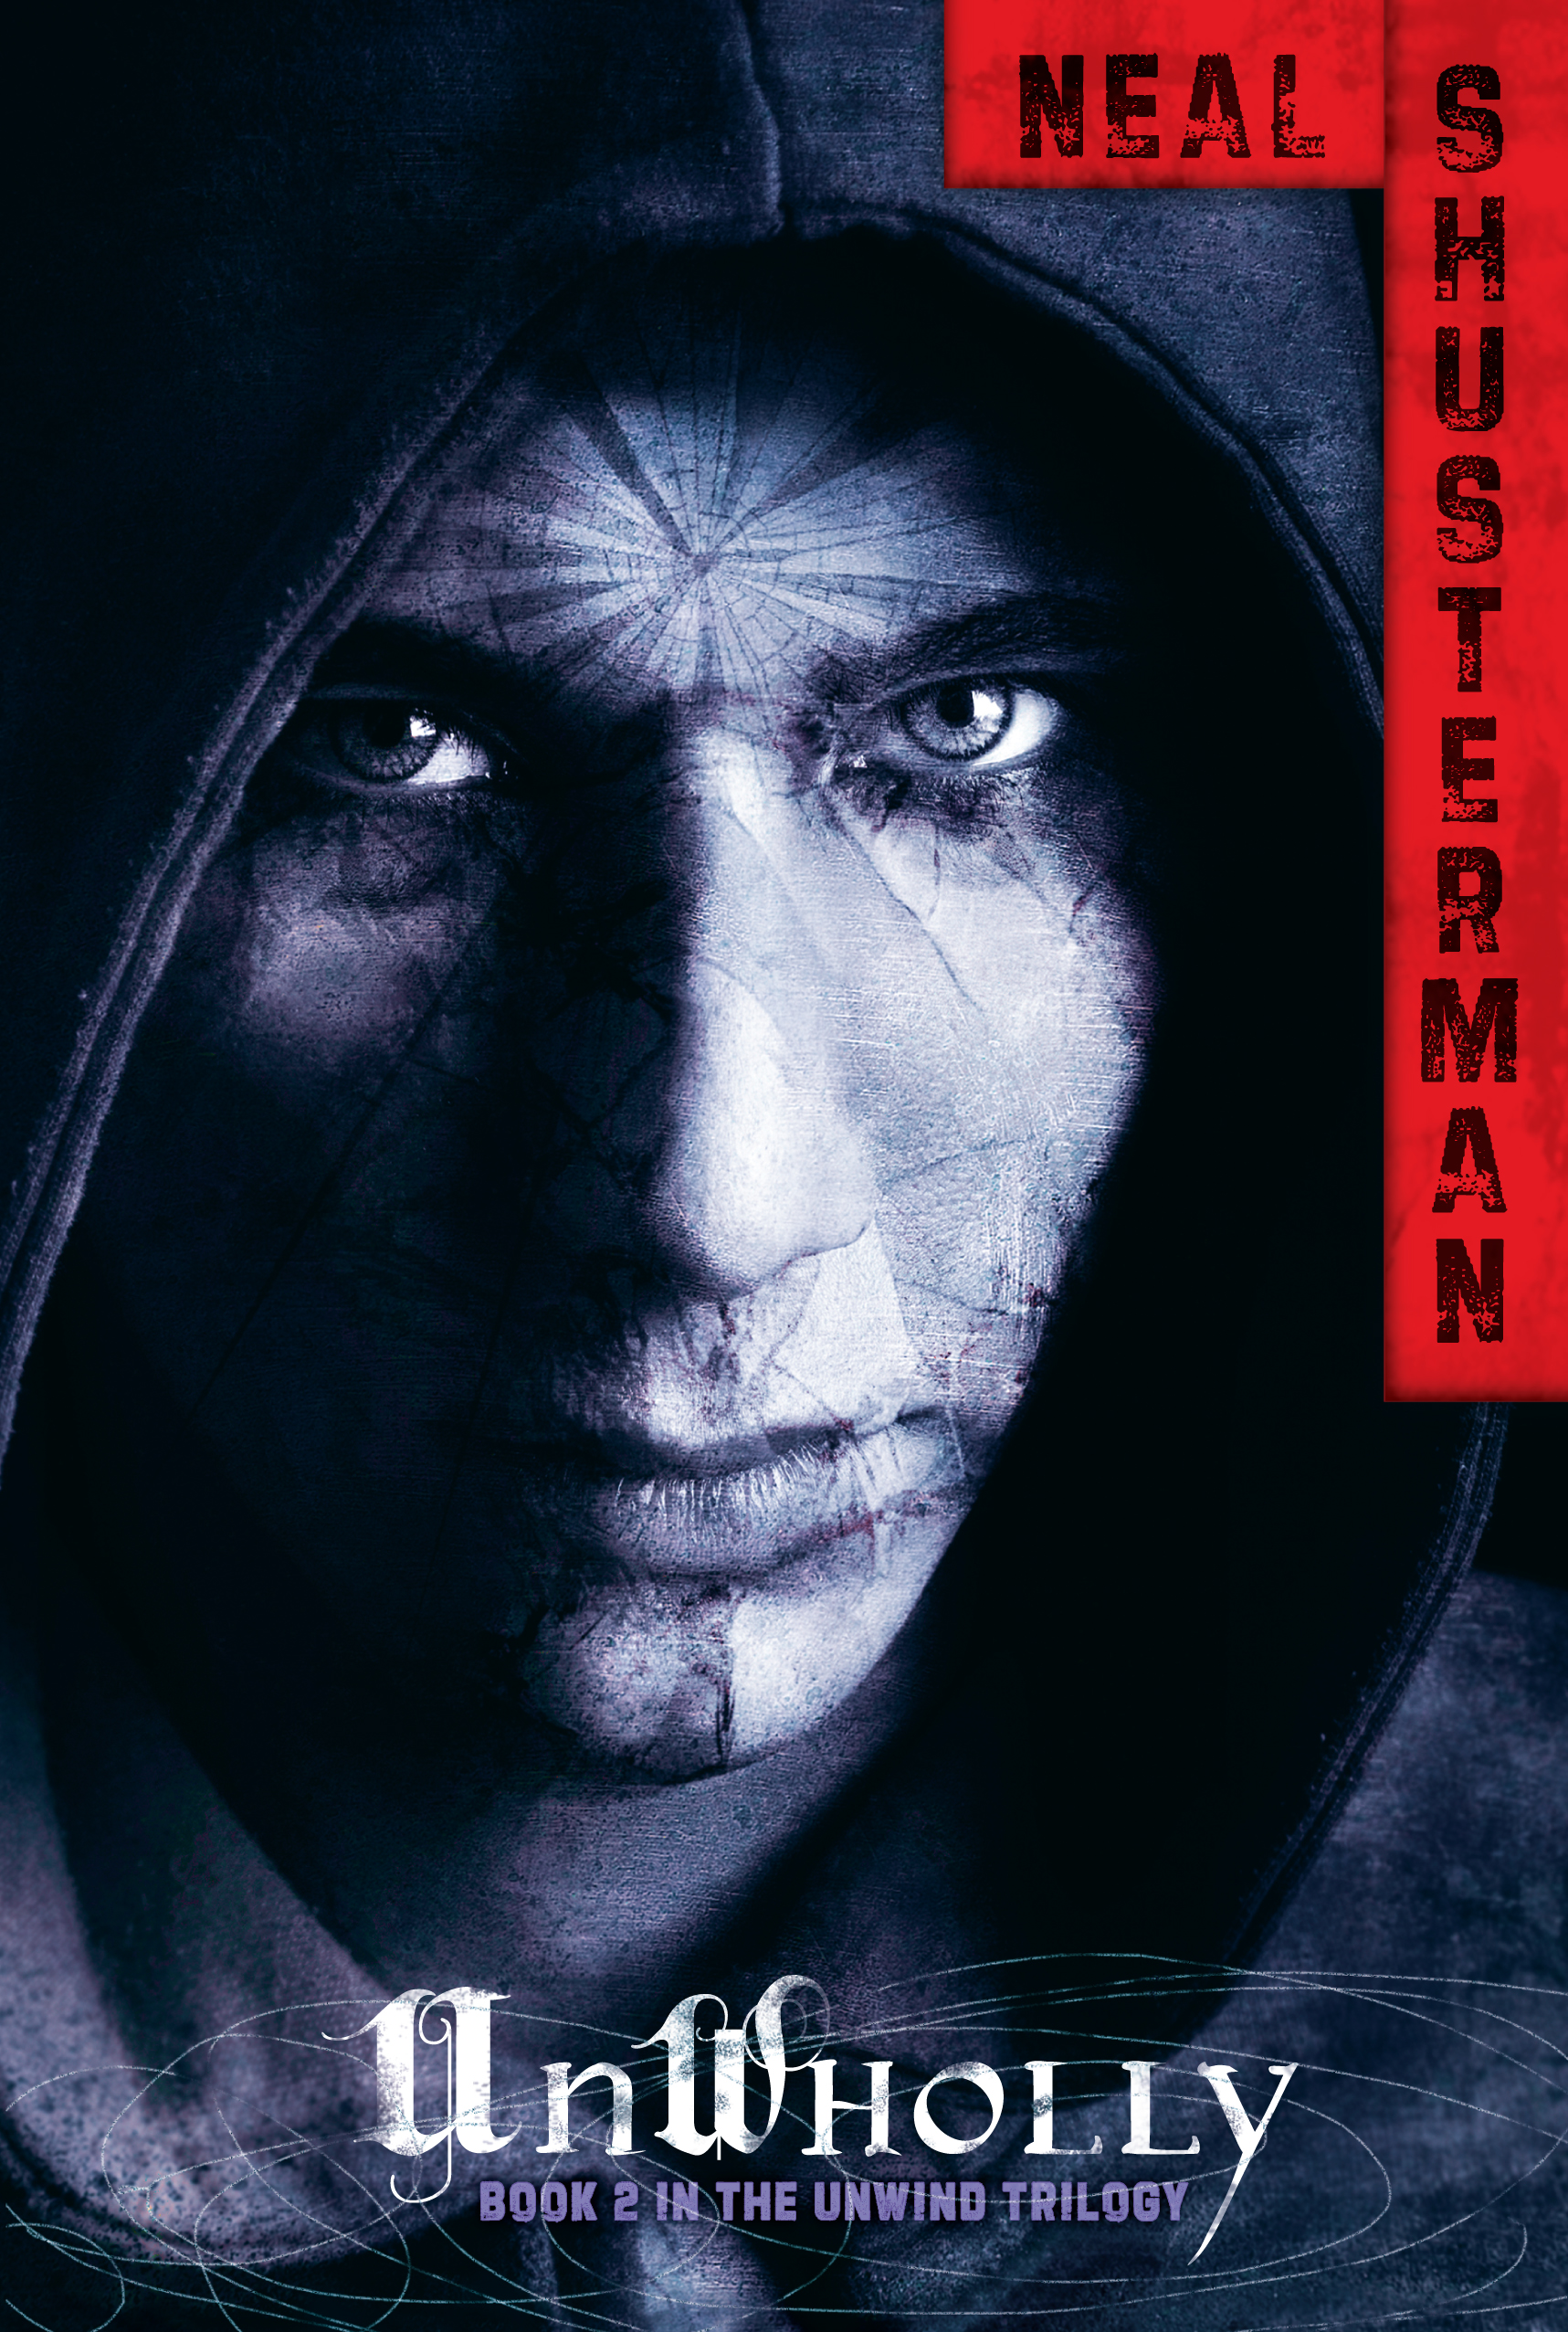 full tilt neal shusterman Full of roller-coaster twists and turns, neal shusterman's page-turner is an orpheus-like adventure into one boy's psyche sixteen-year-old blake and his younger brother, quinn, are exact.